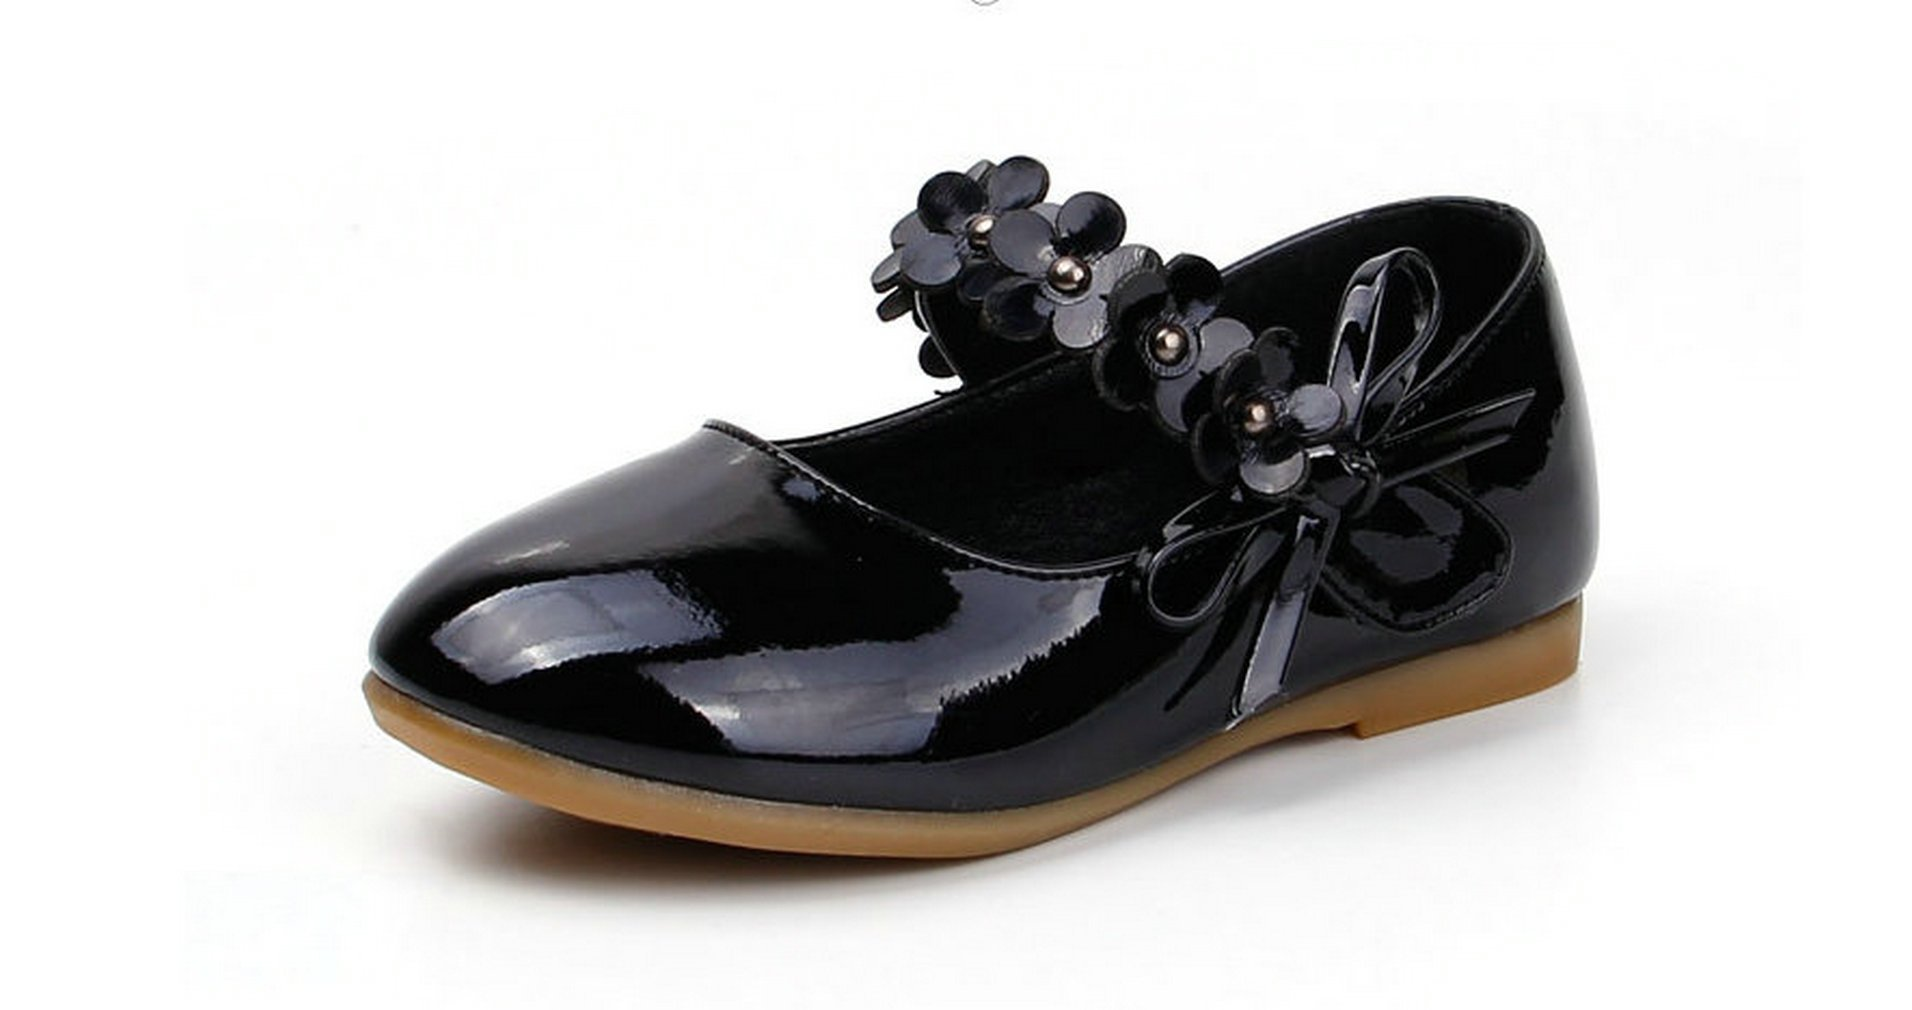 Wendy Wu Girl Ballet Ankle Strap Flats Patent Leather Shoes (11C, Black)